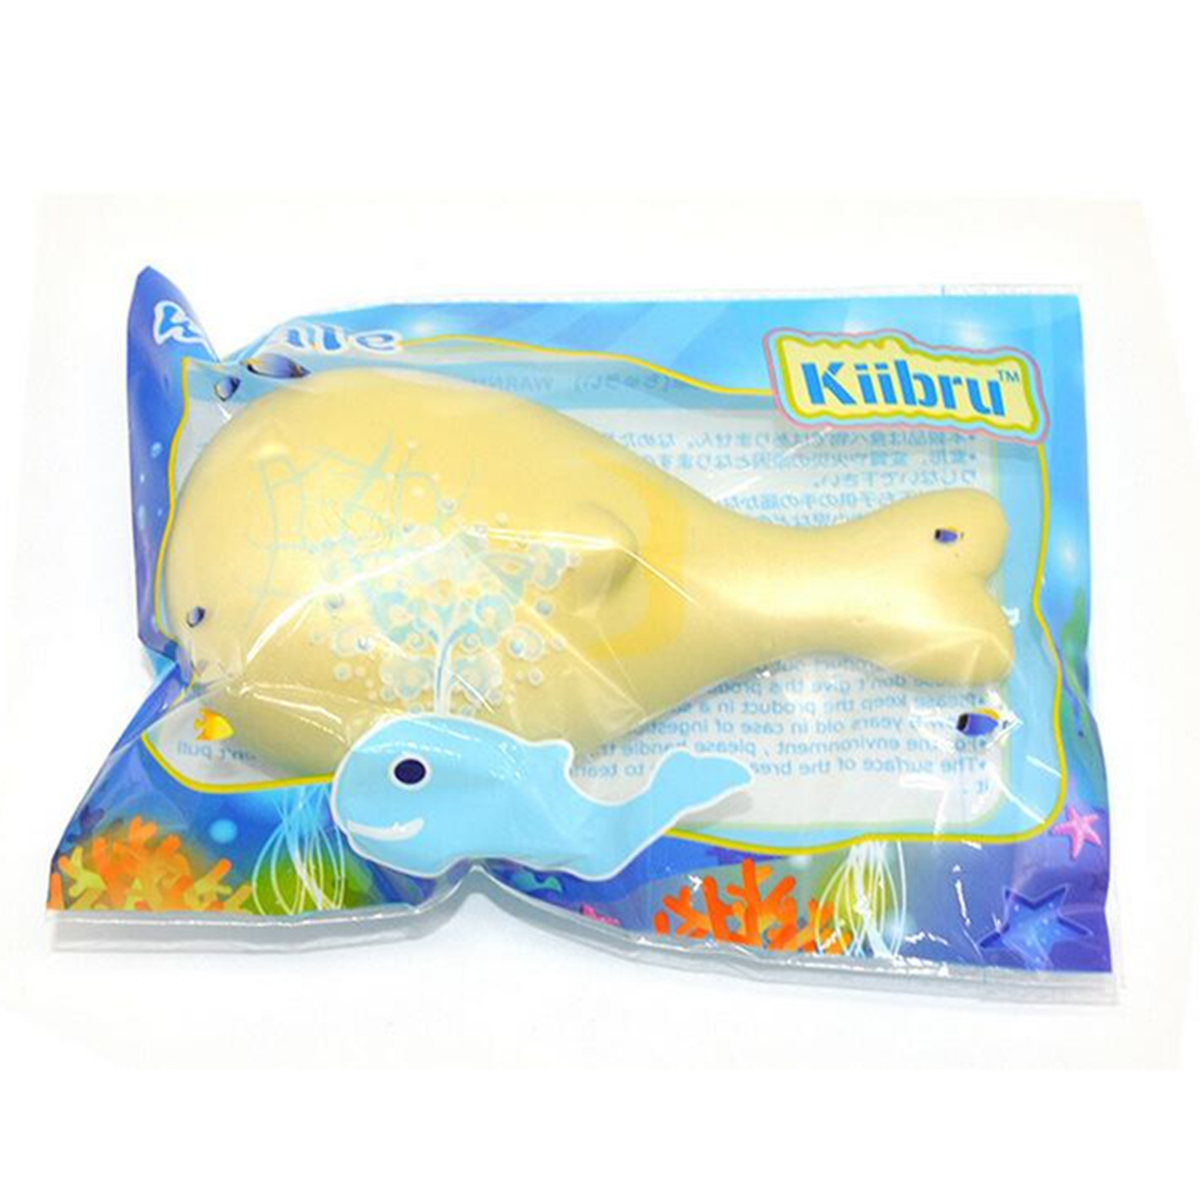 15cm Whale Squishy Slow Rising Pressure Release Soft Toy With Keychains for Iphone Samsung Xiaomi